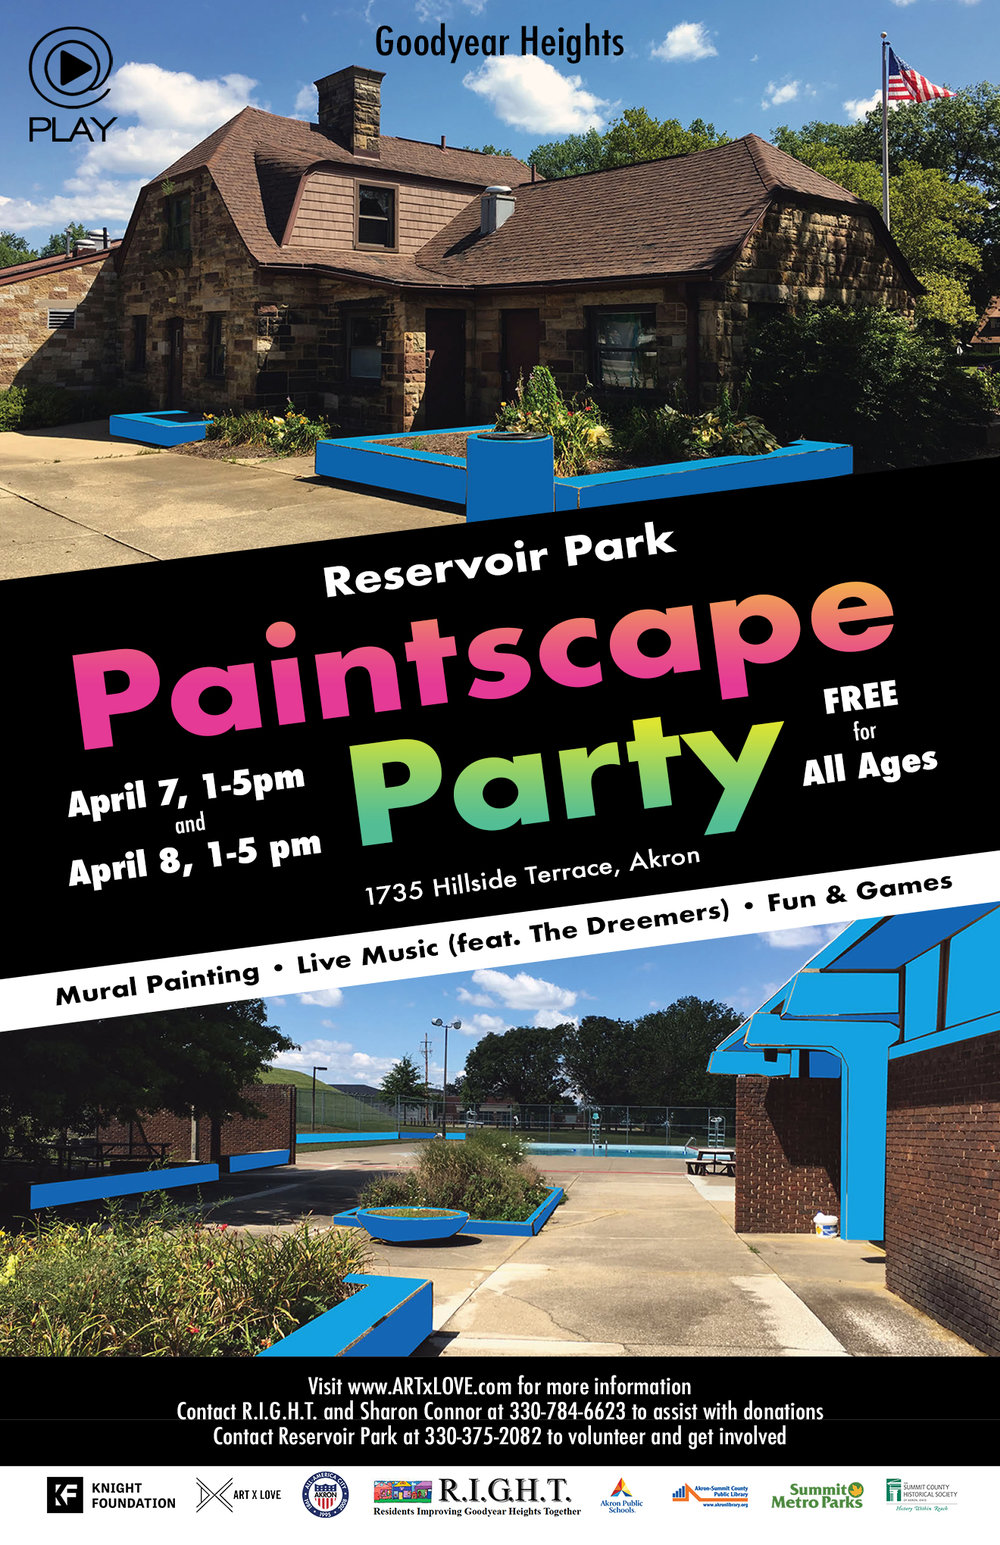 ARTxLOVE_@PLAY_PaintscapeParty_poster